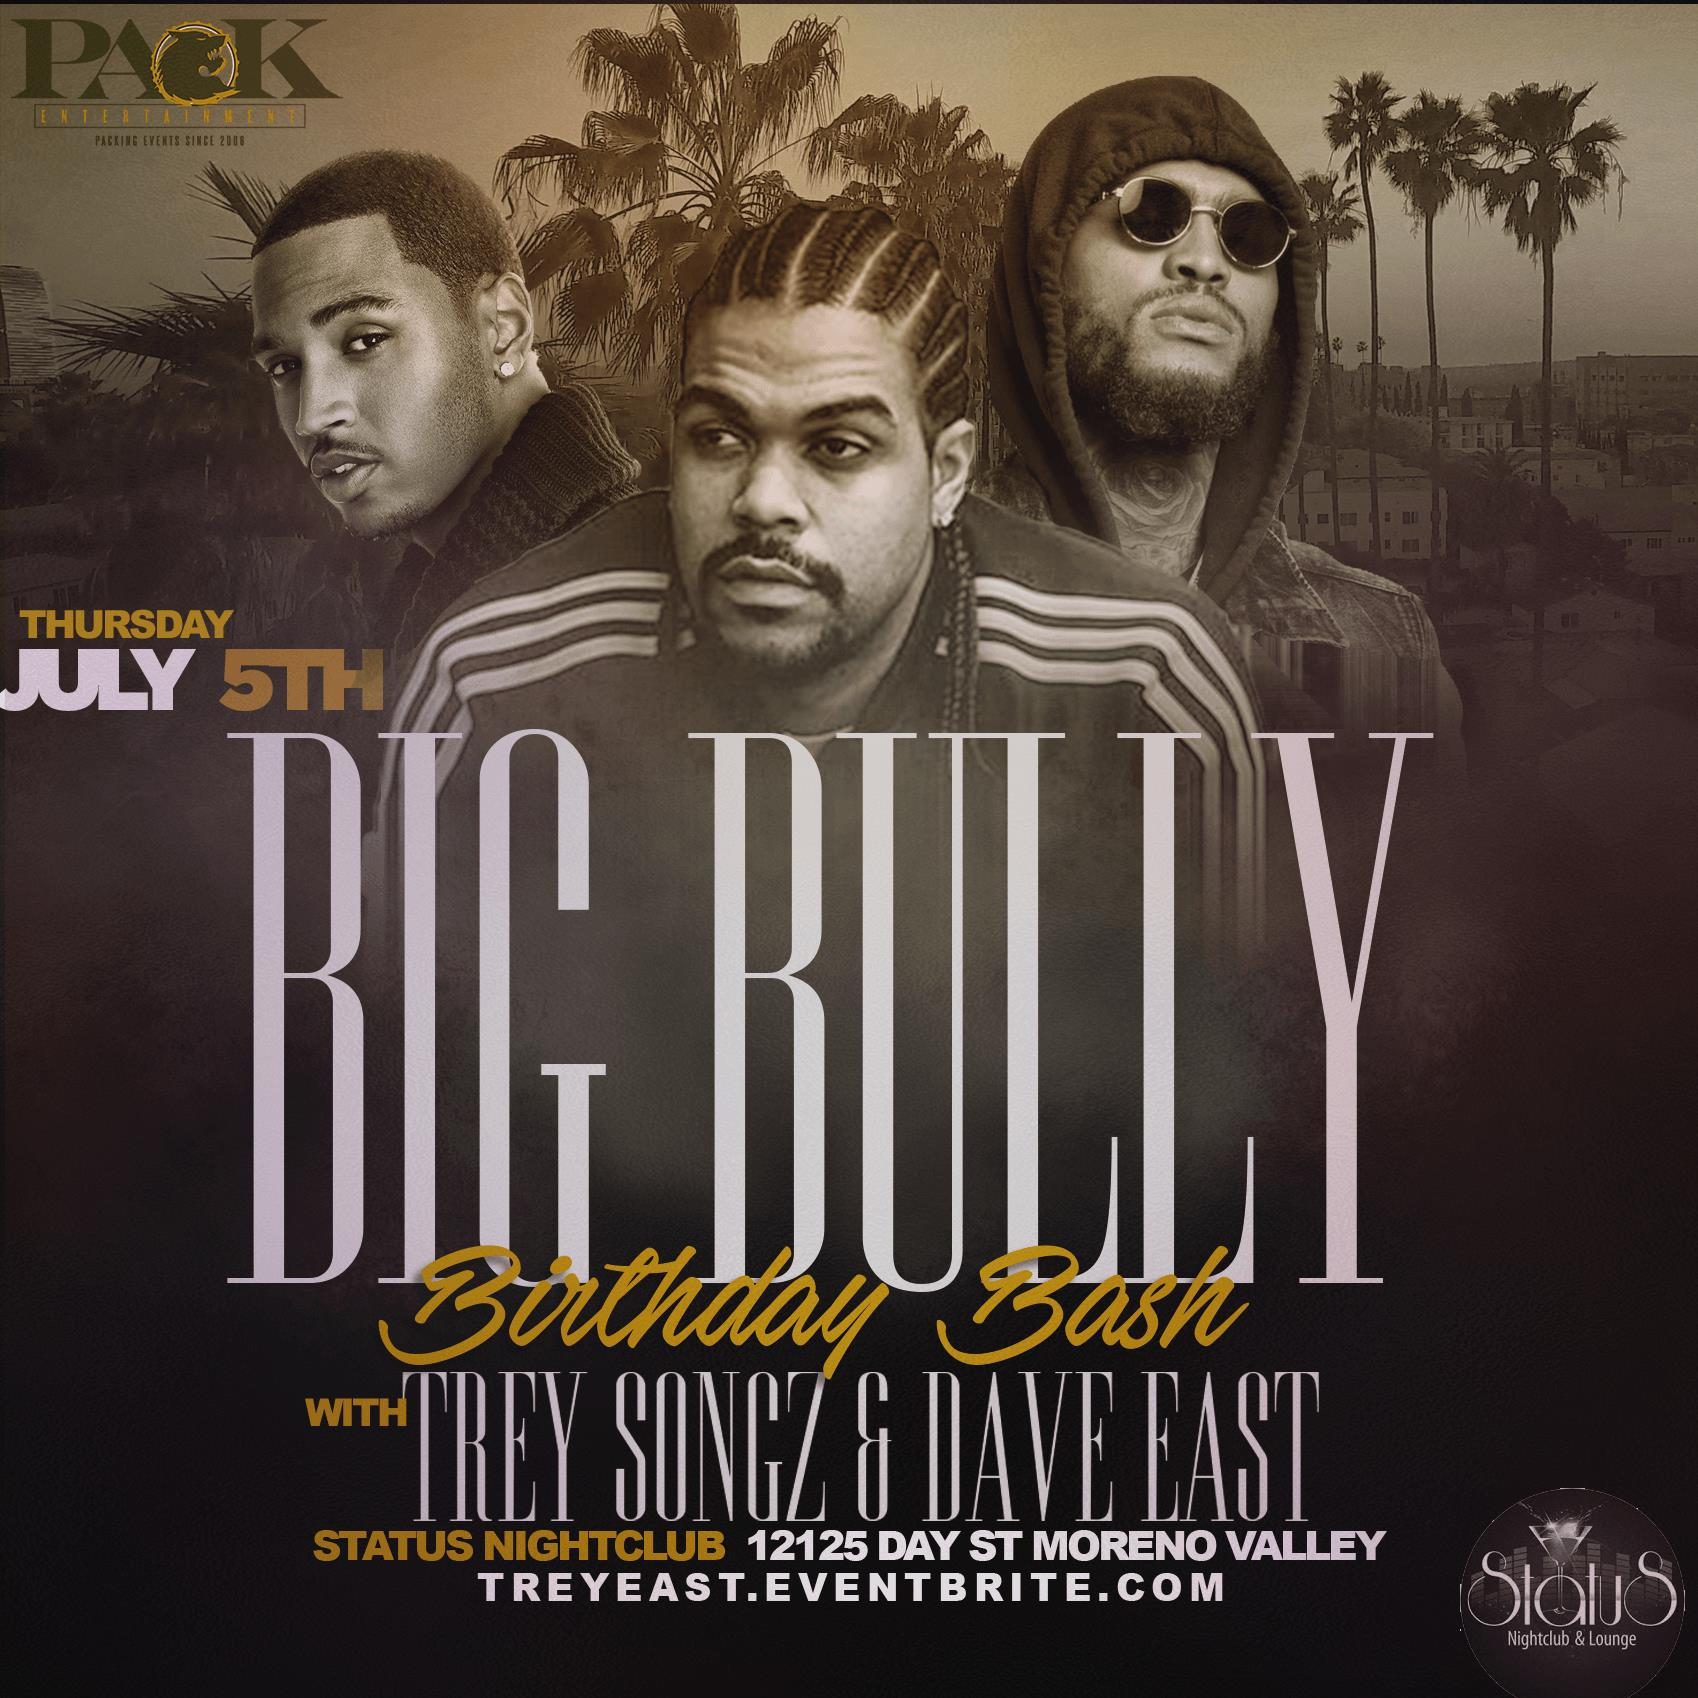 Trey Songz Dave East Hosts Bullys Birthday Bash In The Ie Tickets